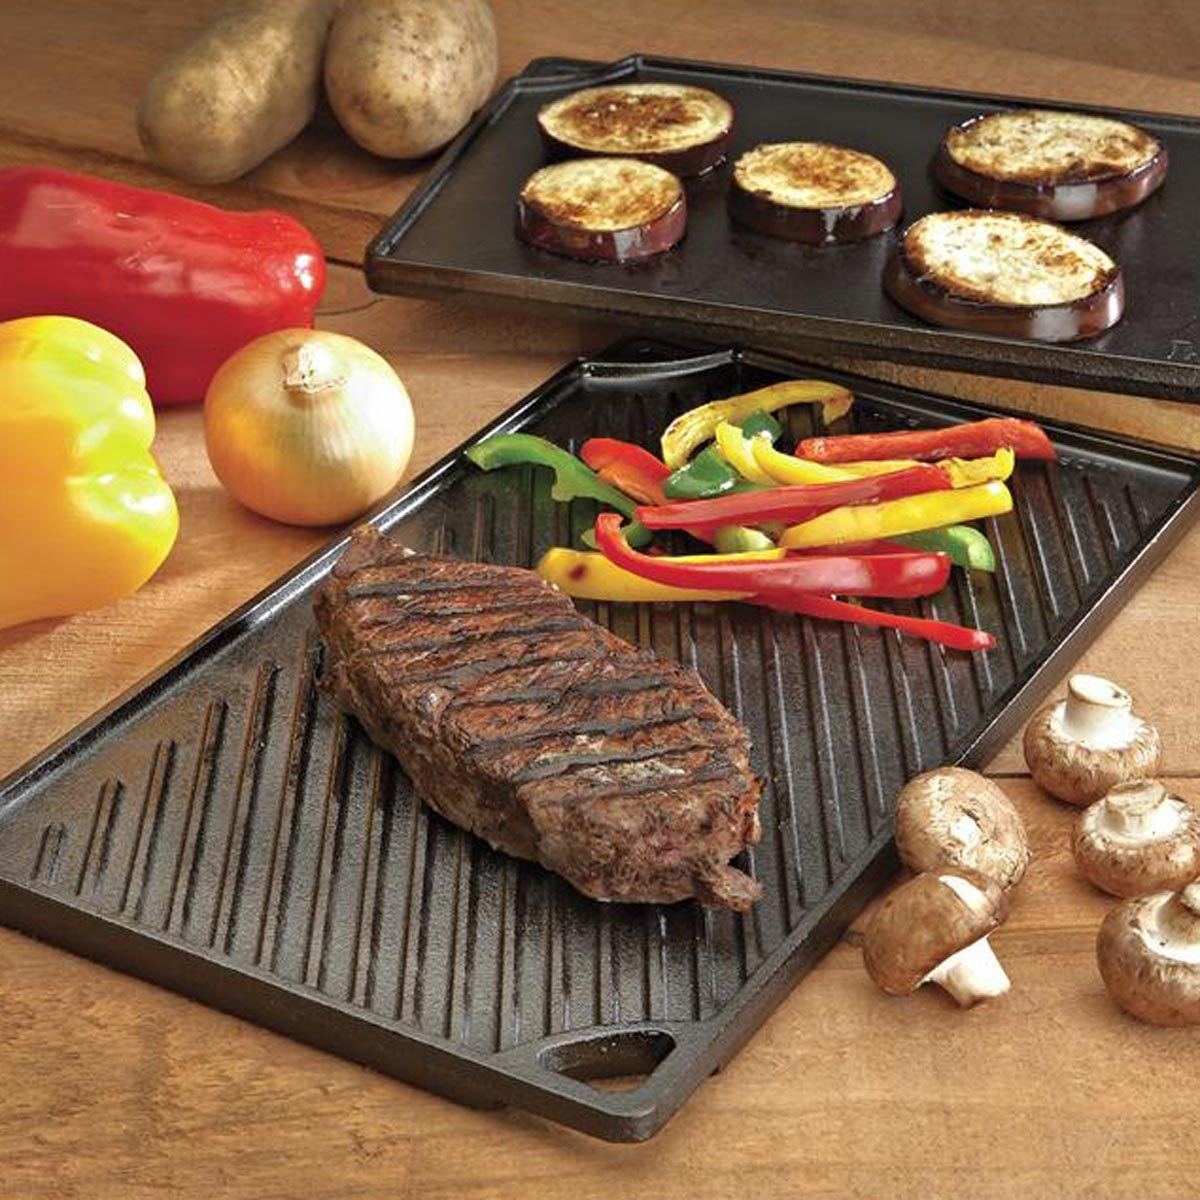 Lodge Reversible Grill and Griddle Combo. Double-Sided Cast Iron Pan with Smooth Side and Ribbed Side. by Lodge (Image #4)